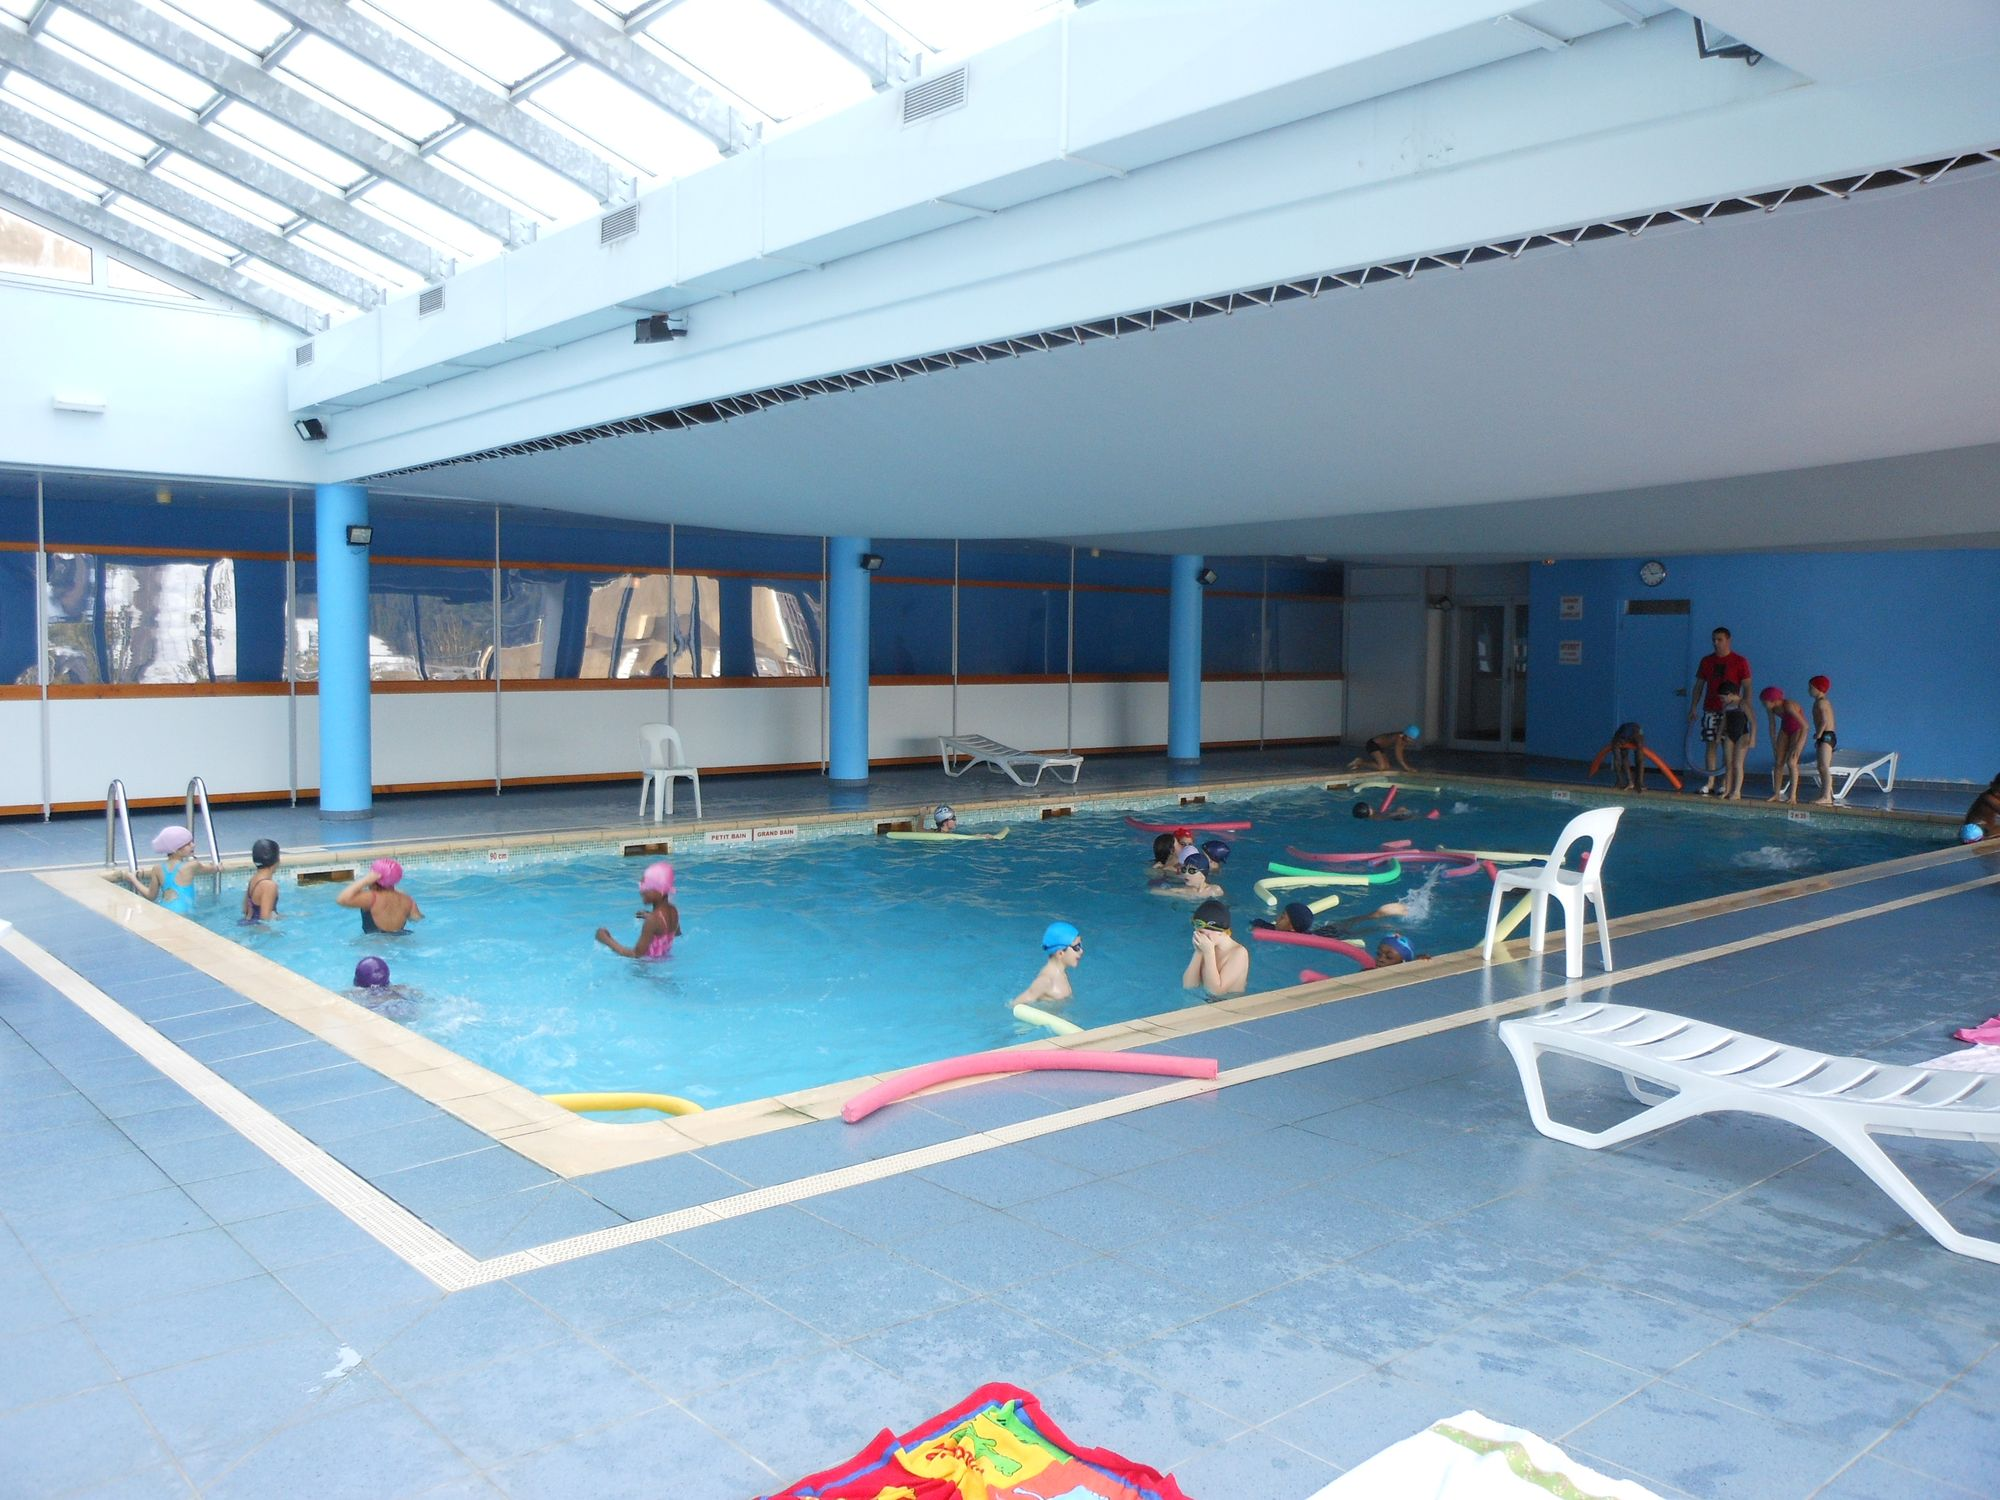 Ecole pierre mendes france chatenay malabry les ce2 c en - Piscine chatenay malabry ...